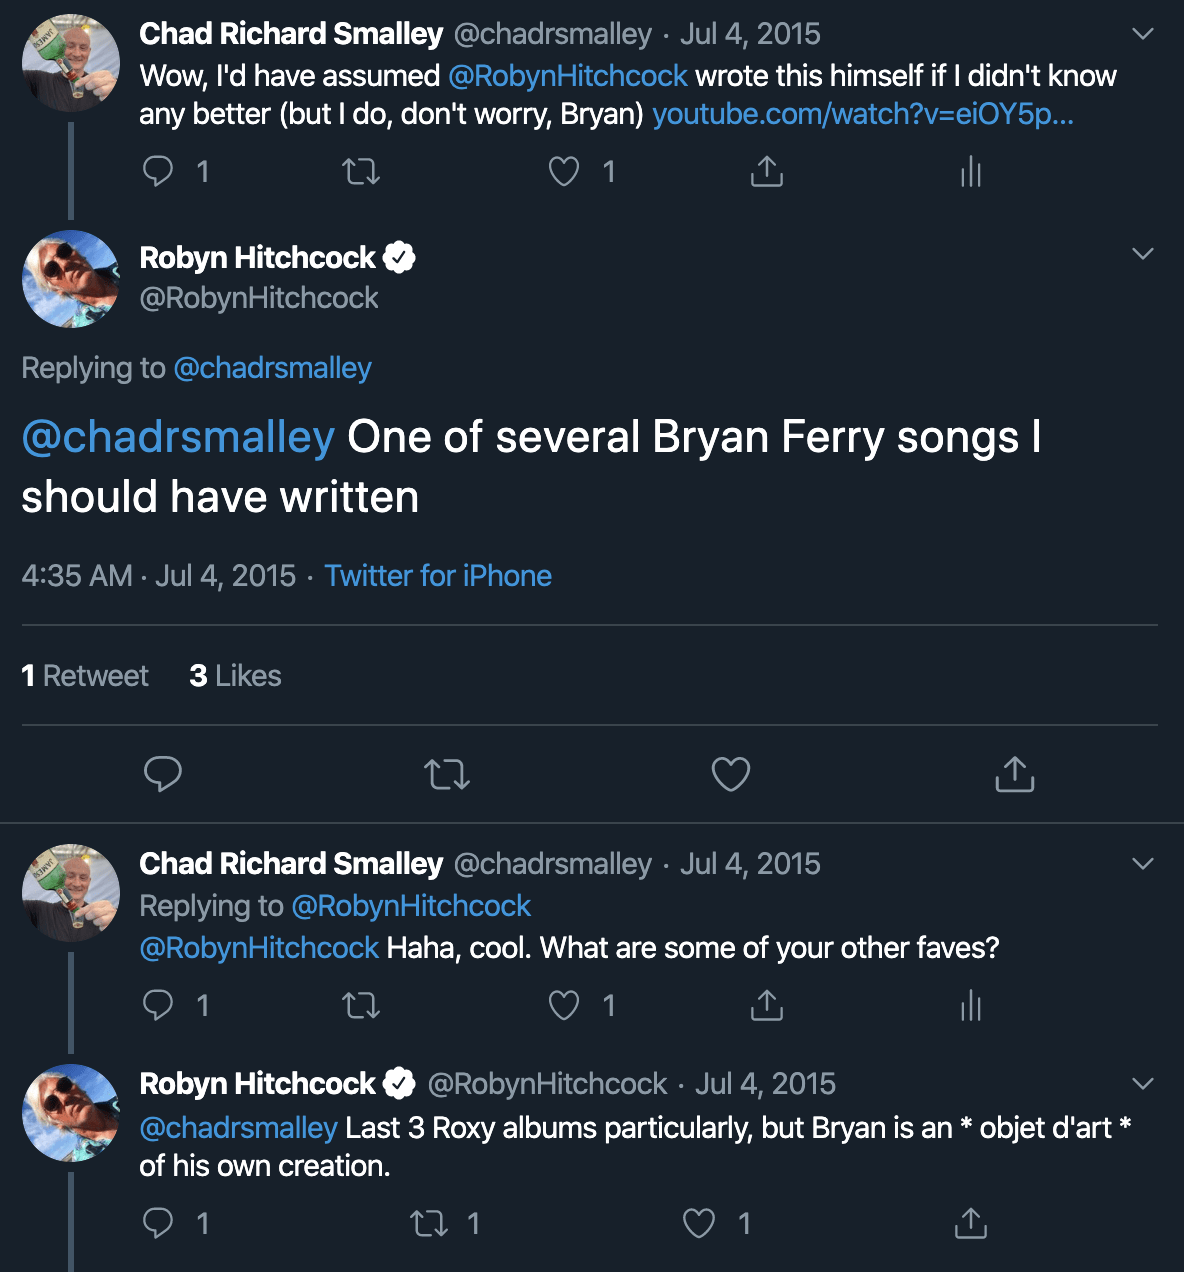 Chad's Twitter conversation with Robyn Hitchcock, July 2015